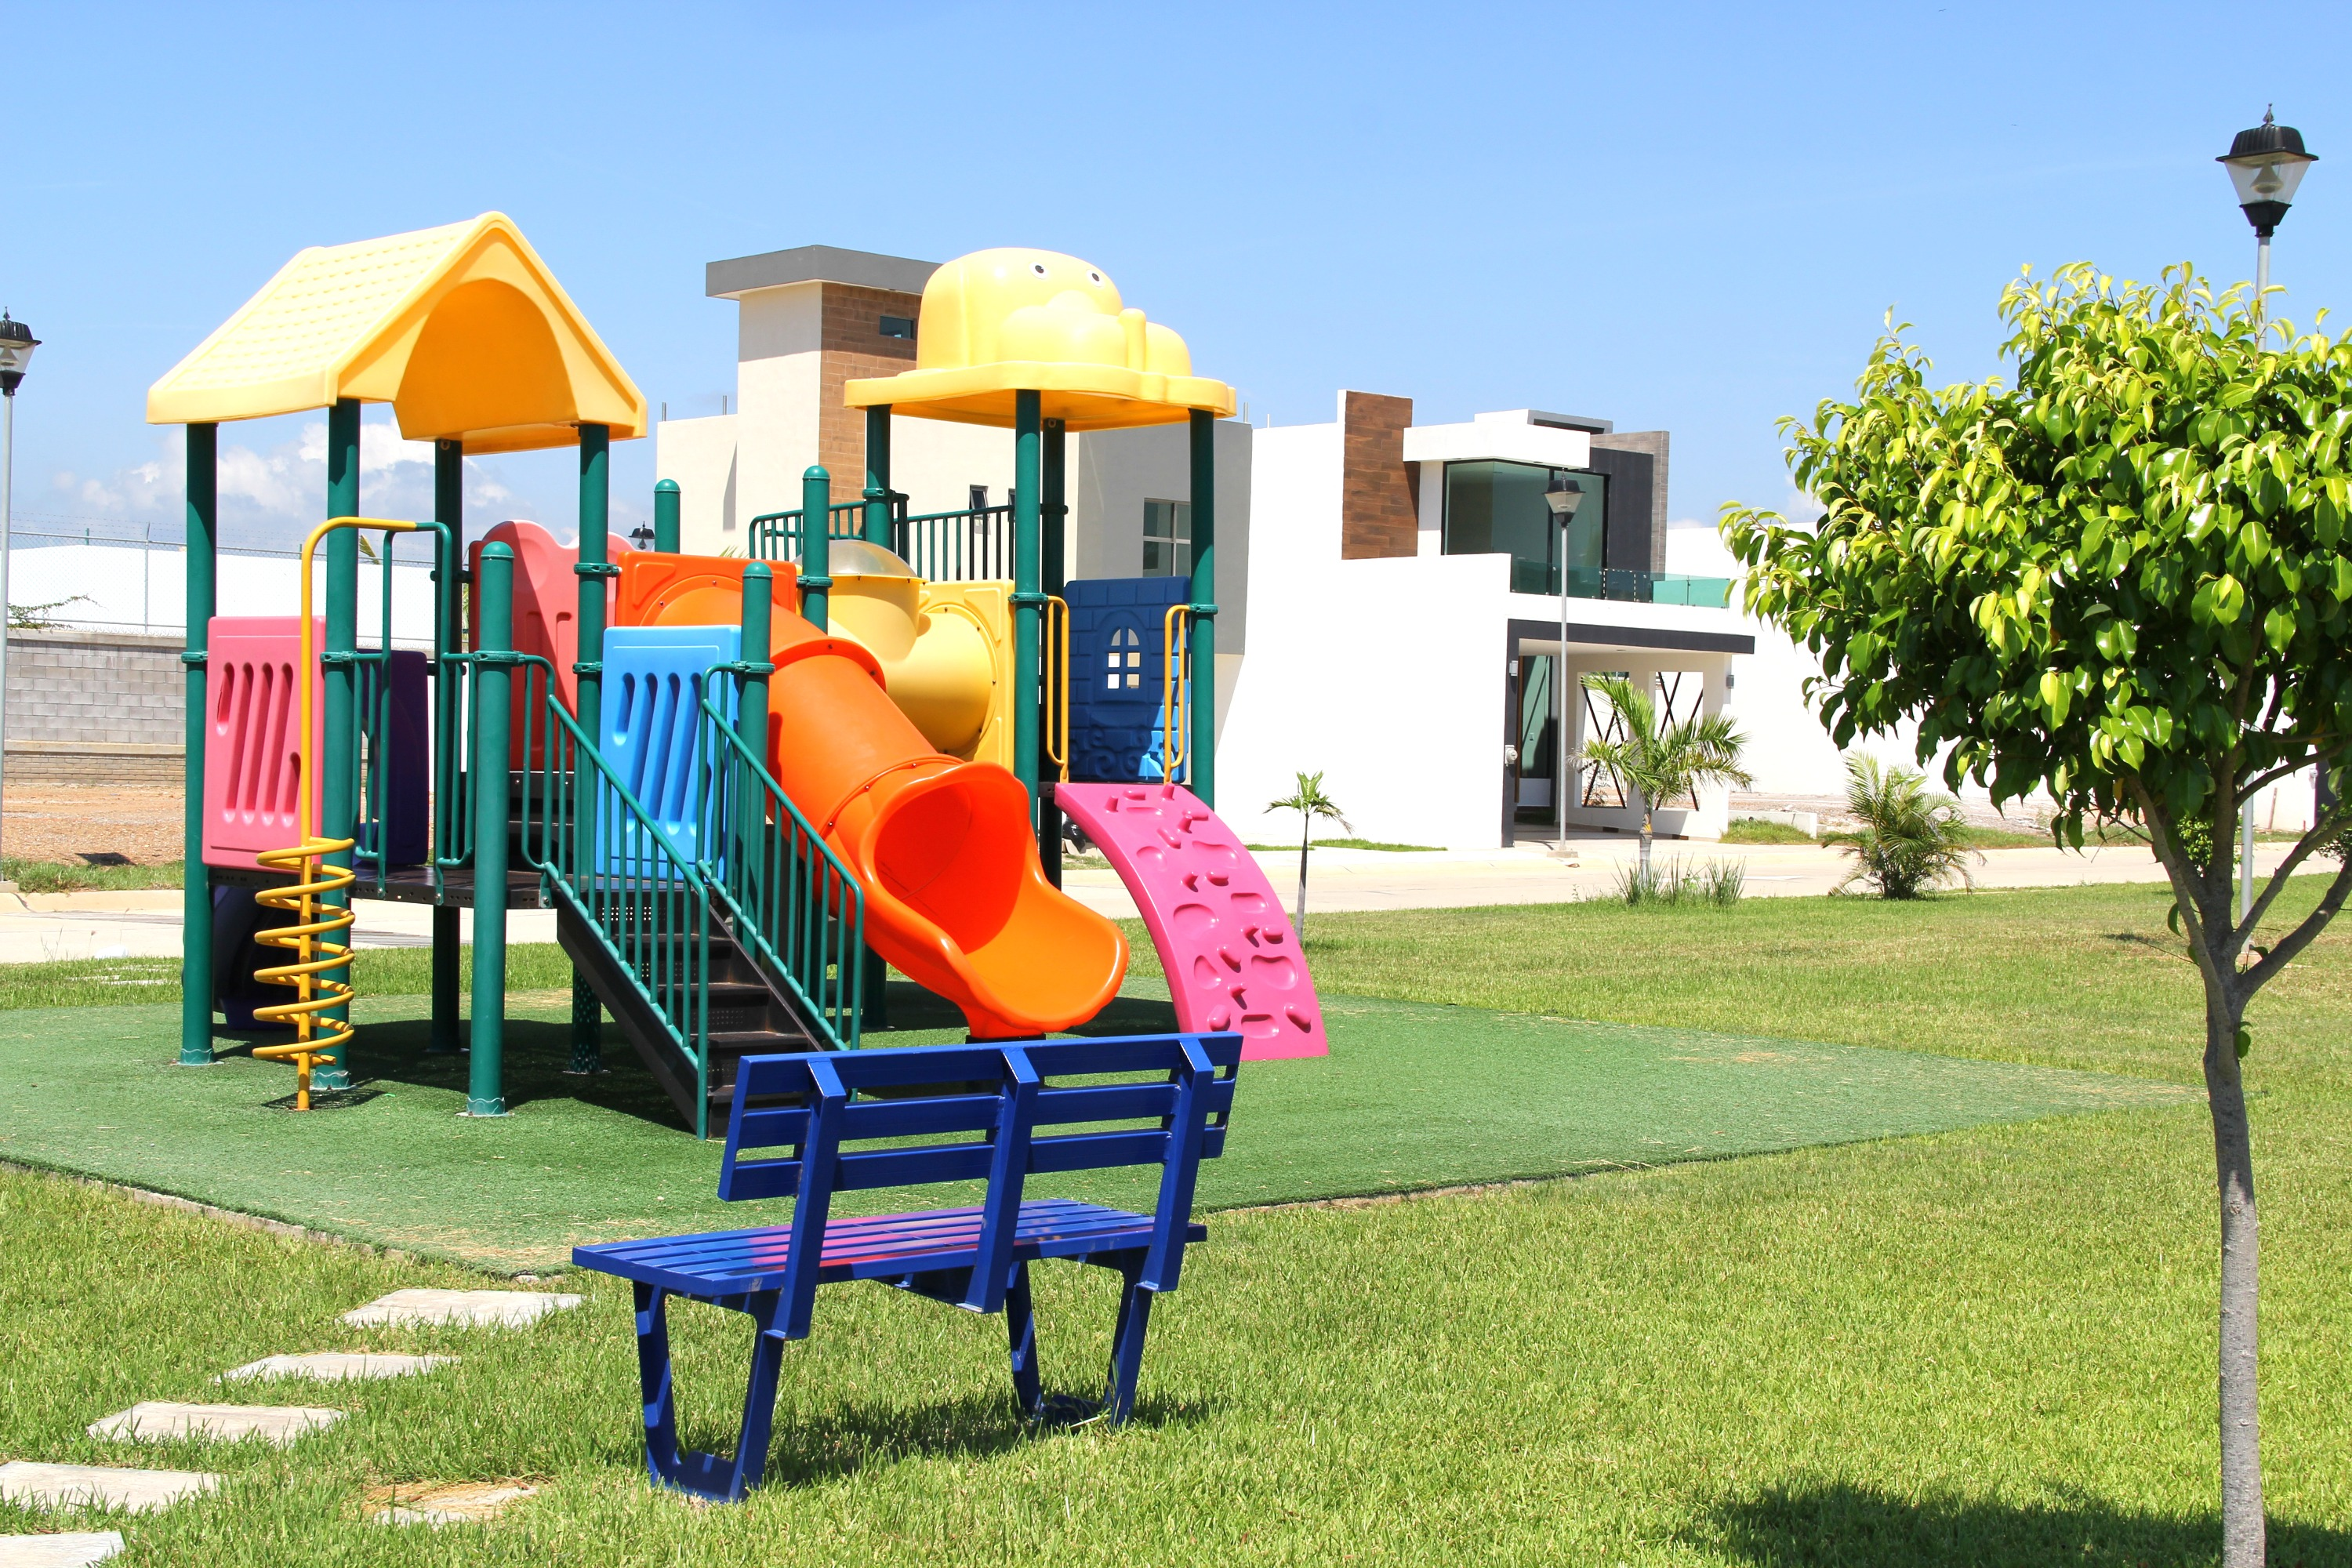 Open play area for kids.